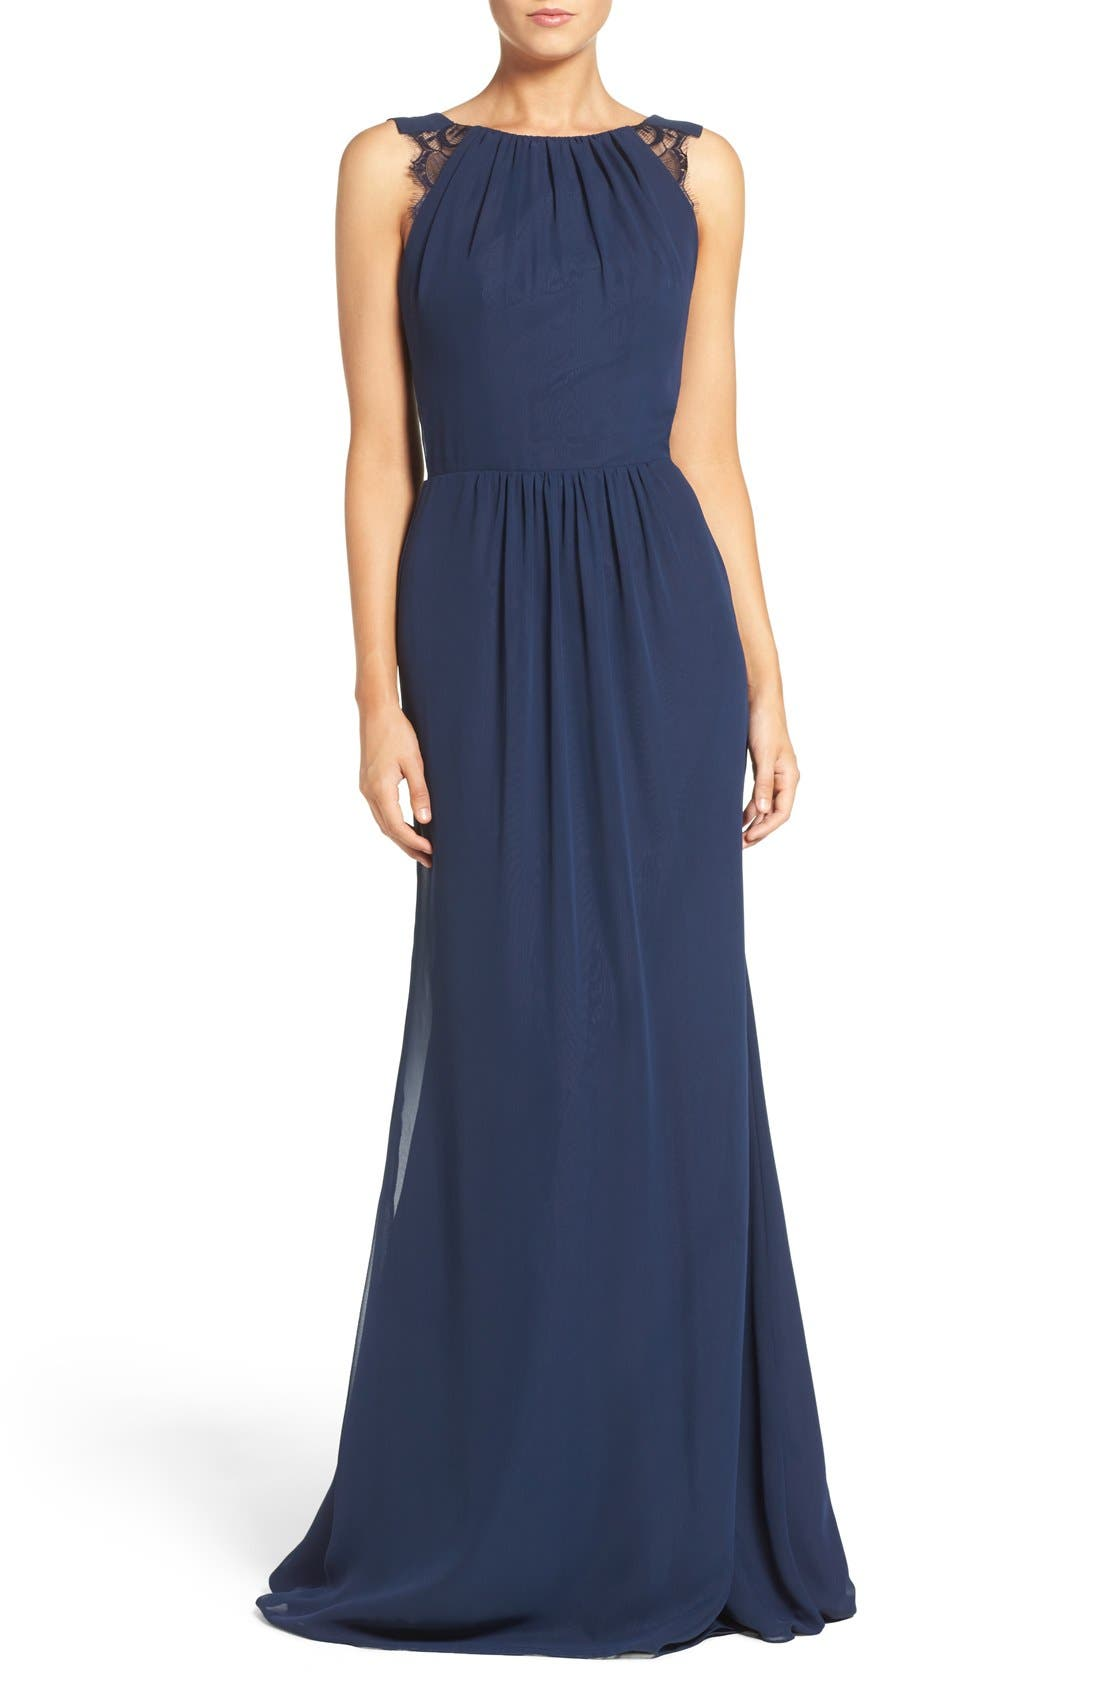 Main Image - Hayley Paige Occasions Lace Strap Gathered Chiffon Gown